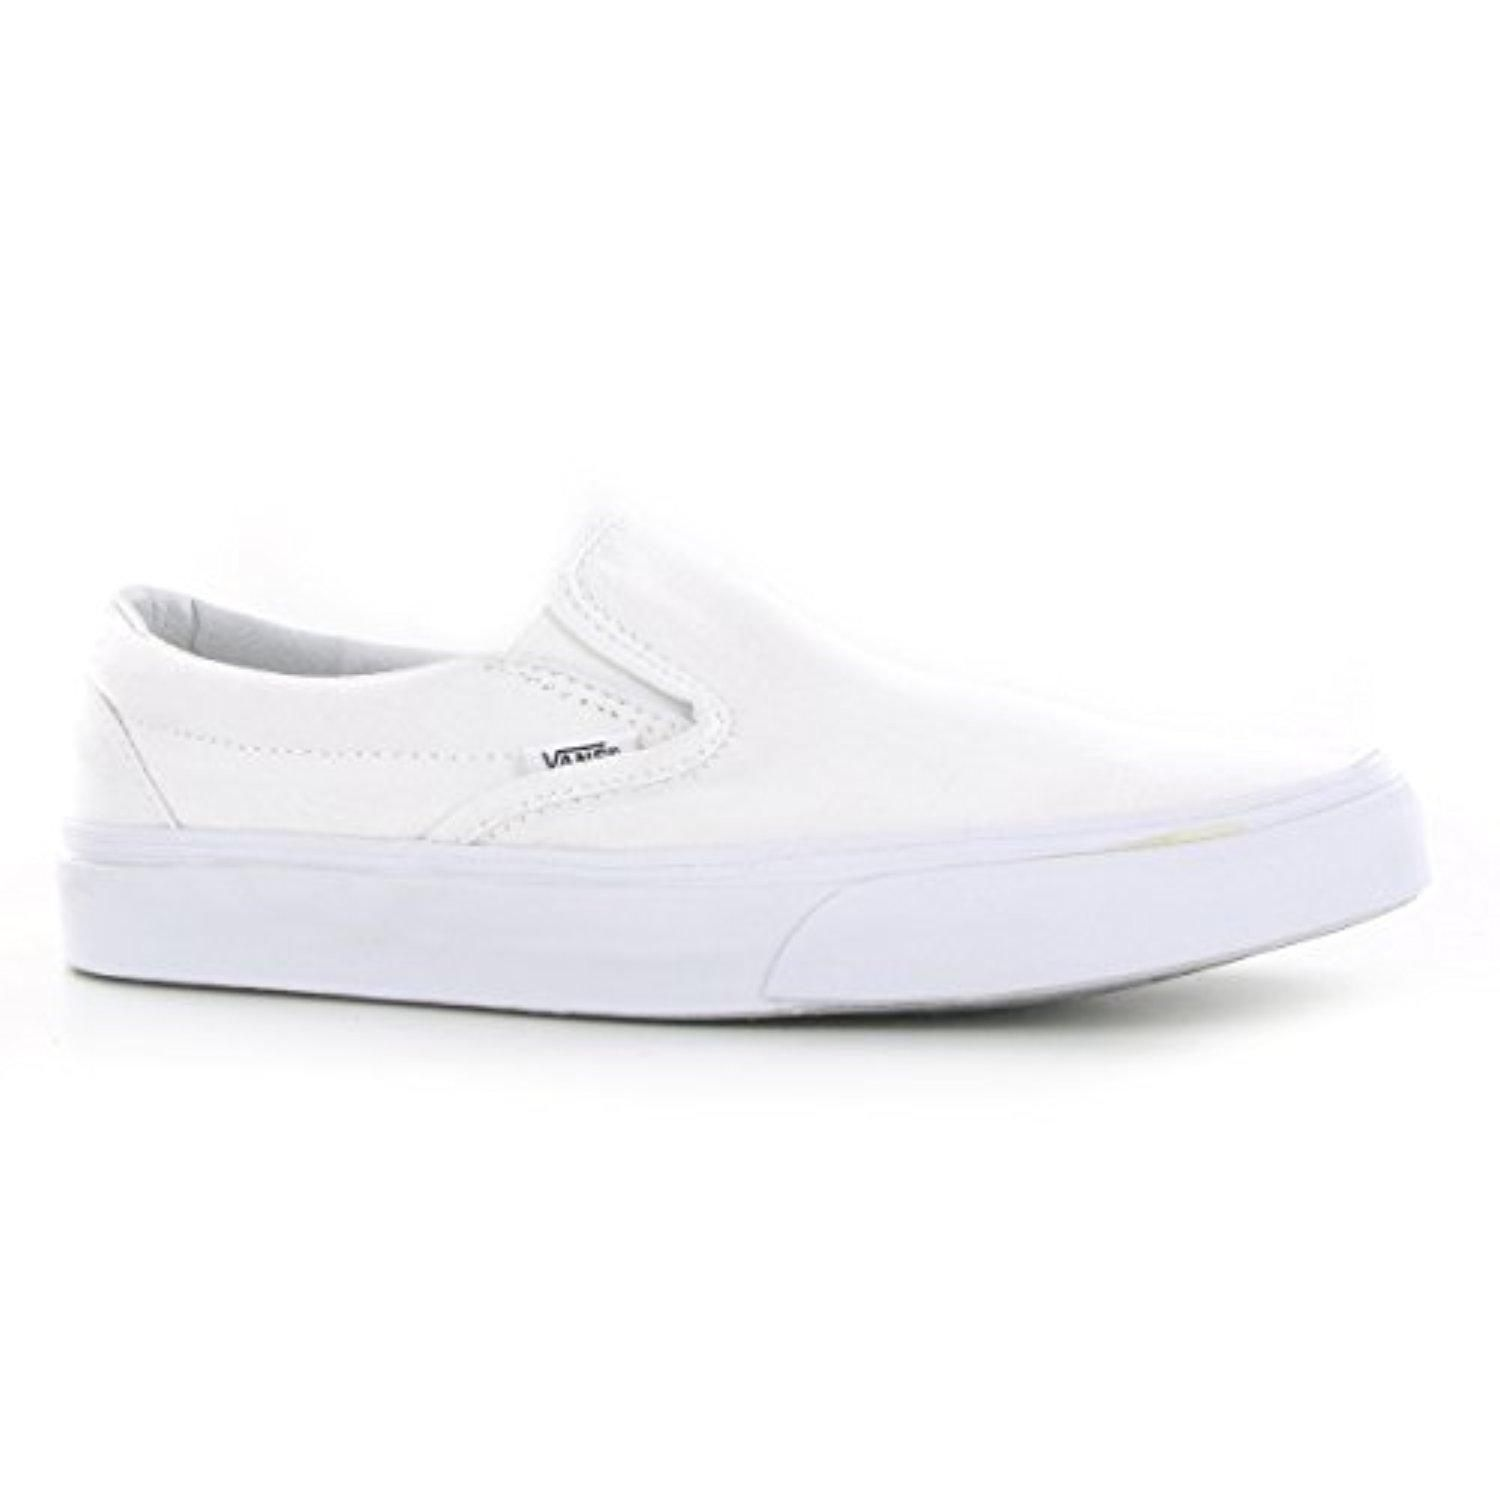 a79dab2c57f3 Vans Classic Slip On White Womens Trainers Size 7 US - Brought to you by  Avarsha.com